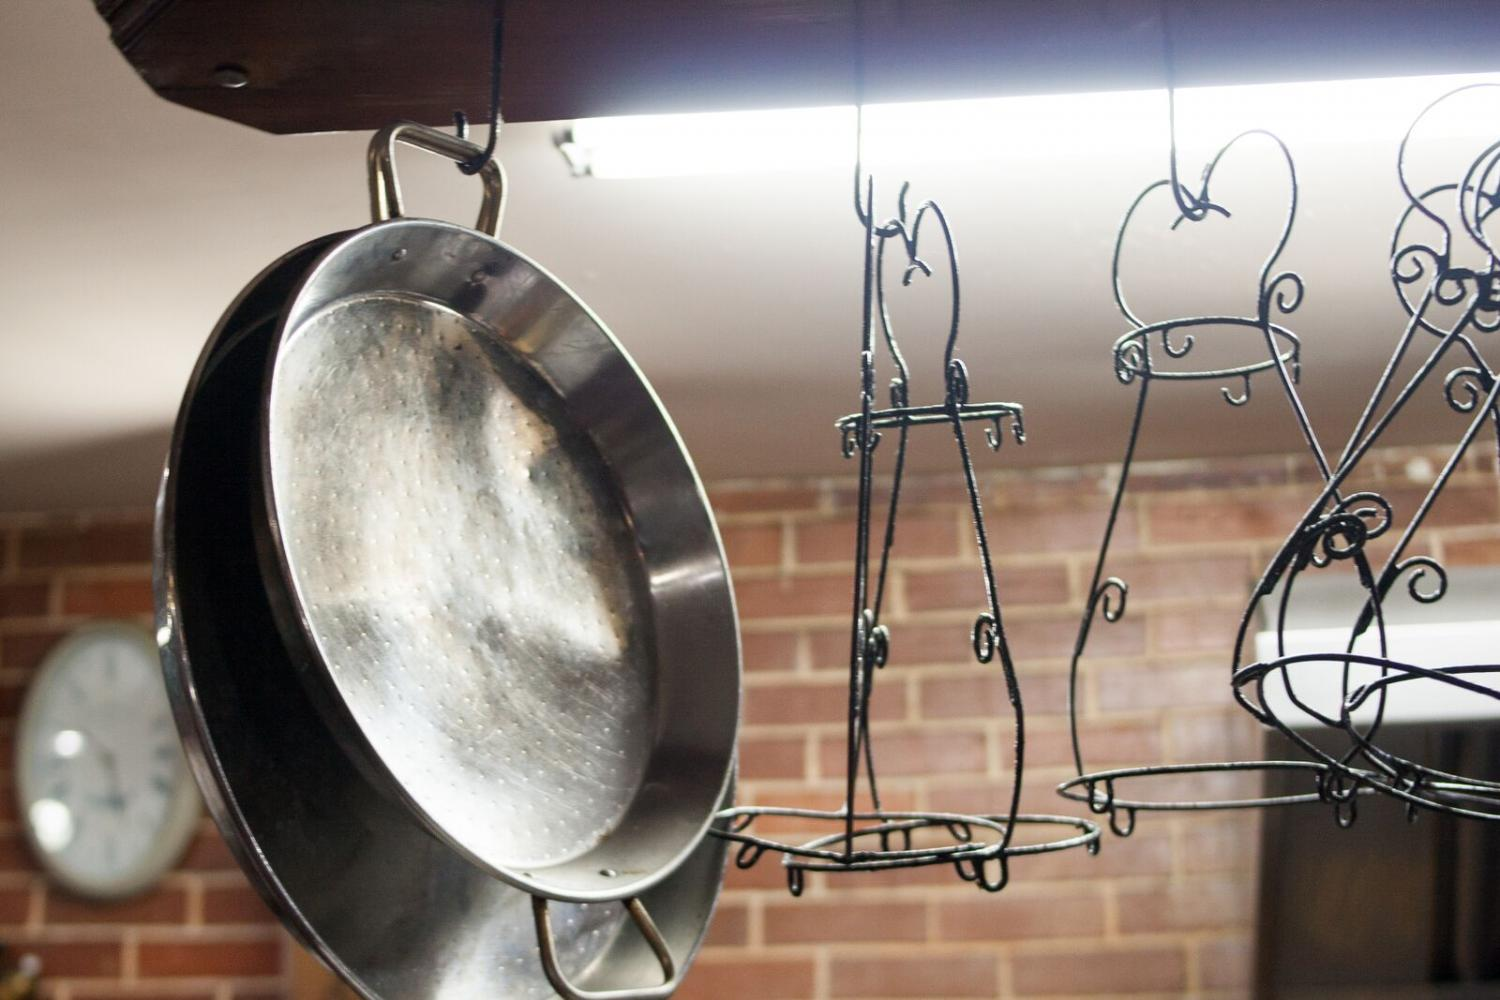 Handmade+kitchen+tools+hanging+in+the+kitchen+at+El+Idilio.